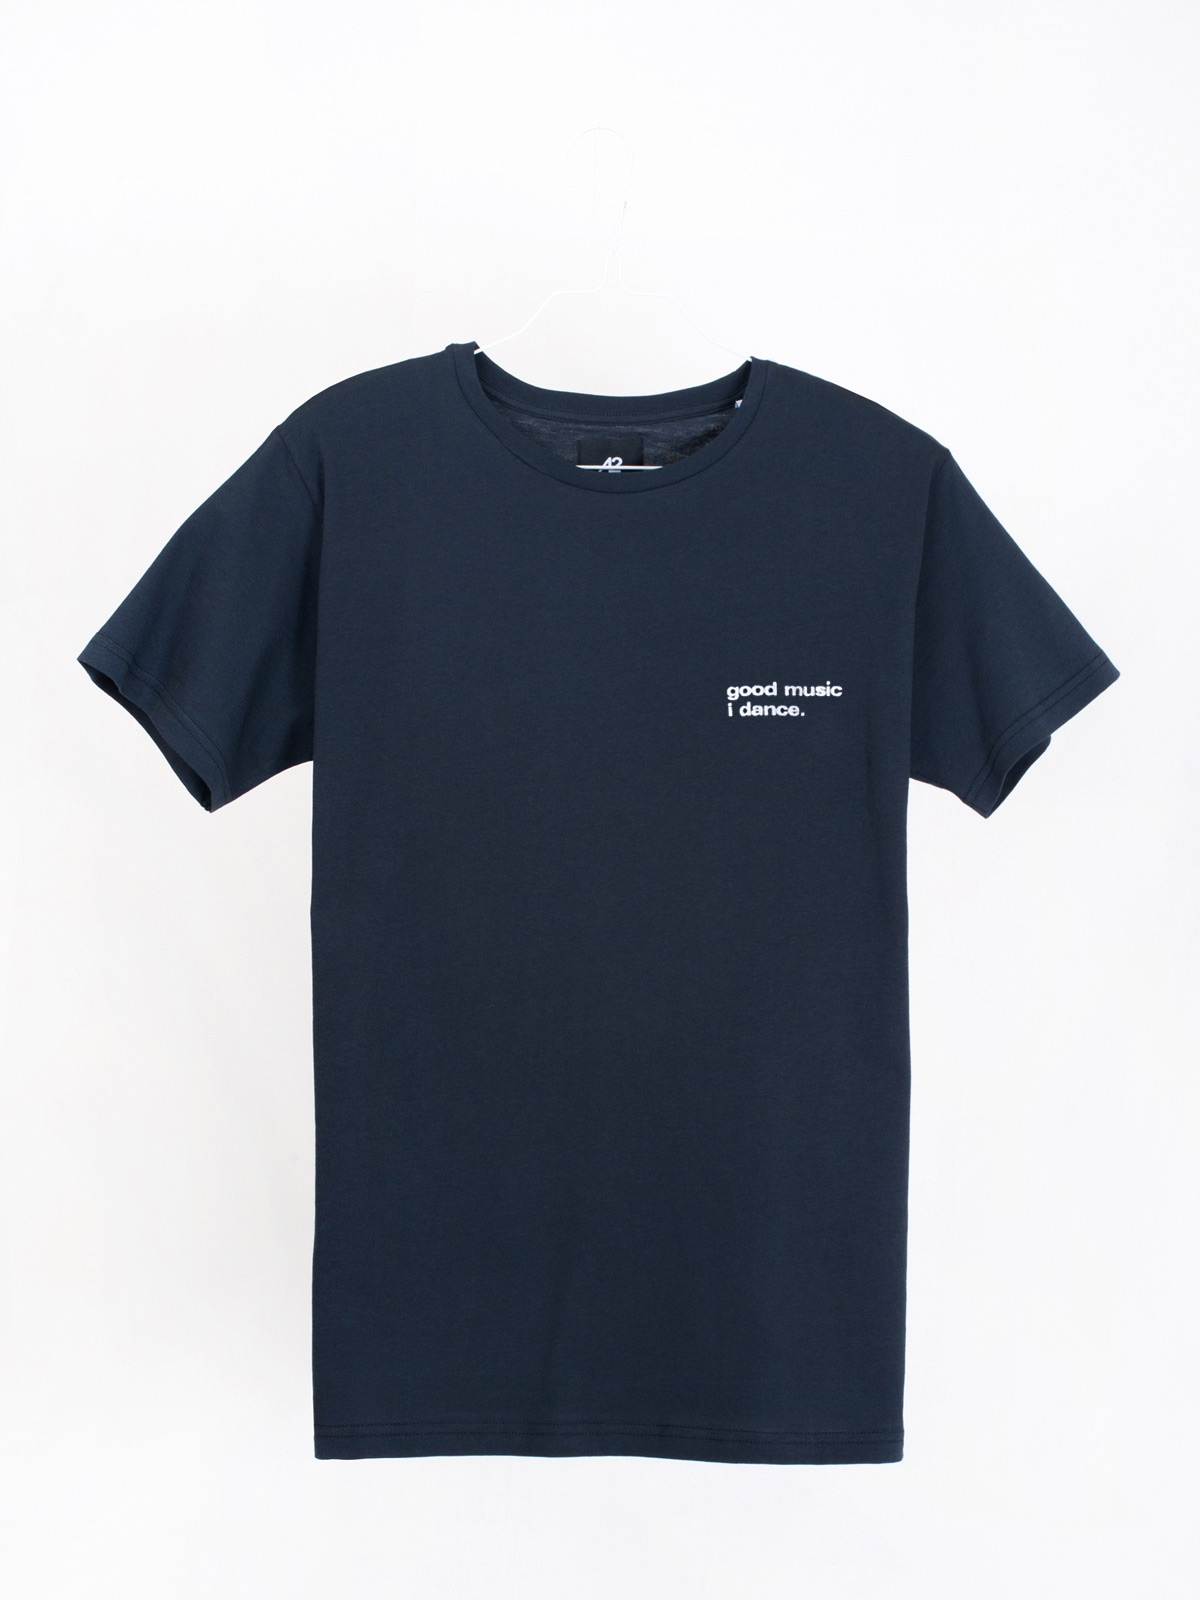 airbag craftworks good music i dance. mini logo | dark navy